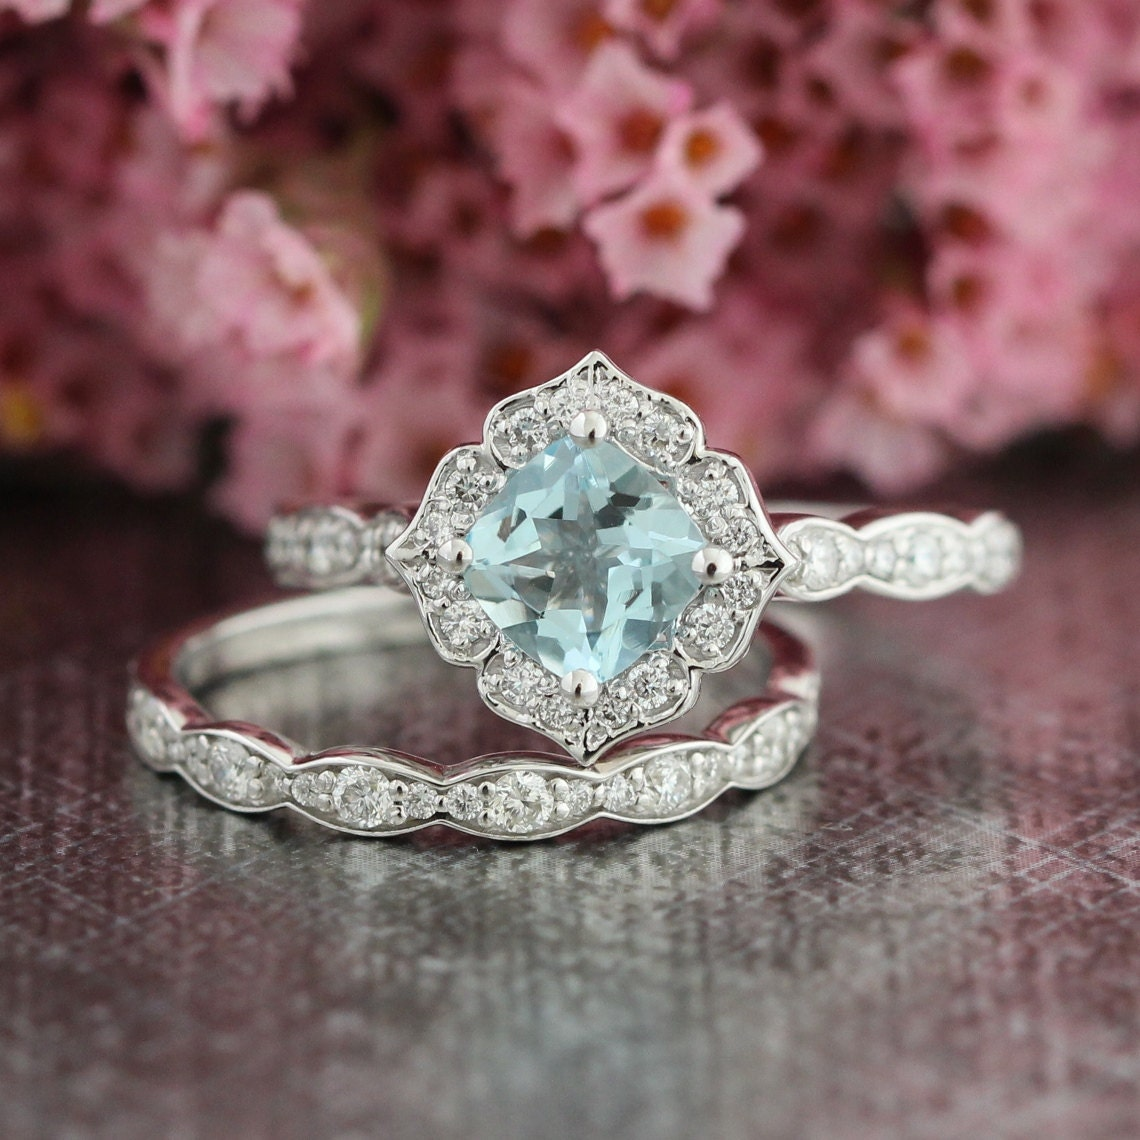 Mini Vintage Floral Aquamarine Engagement Ring and Scalloped